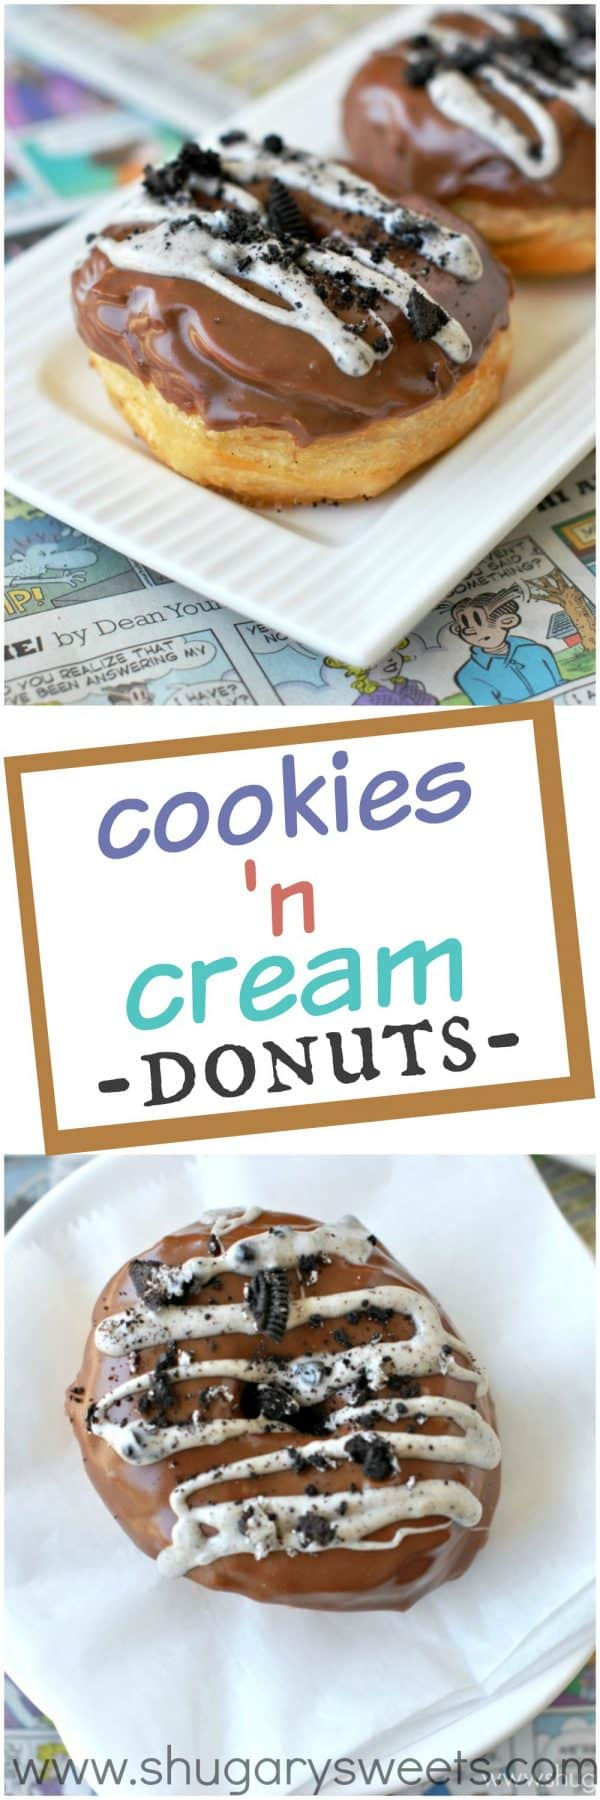 Easy, fried donuts in under 30 minutes! These Cookies 'n Cream Donuts are made using Pillsbury Grands biscuits, Hershey Cookies 'n cream bars, Oreos and Chocolate frosting. Perfect, right?!